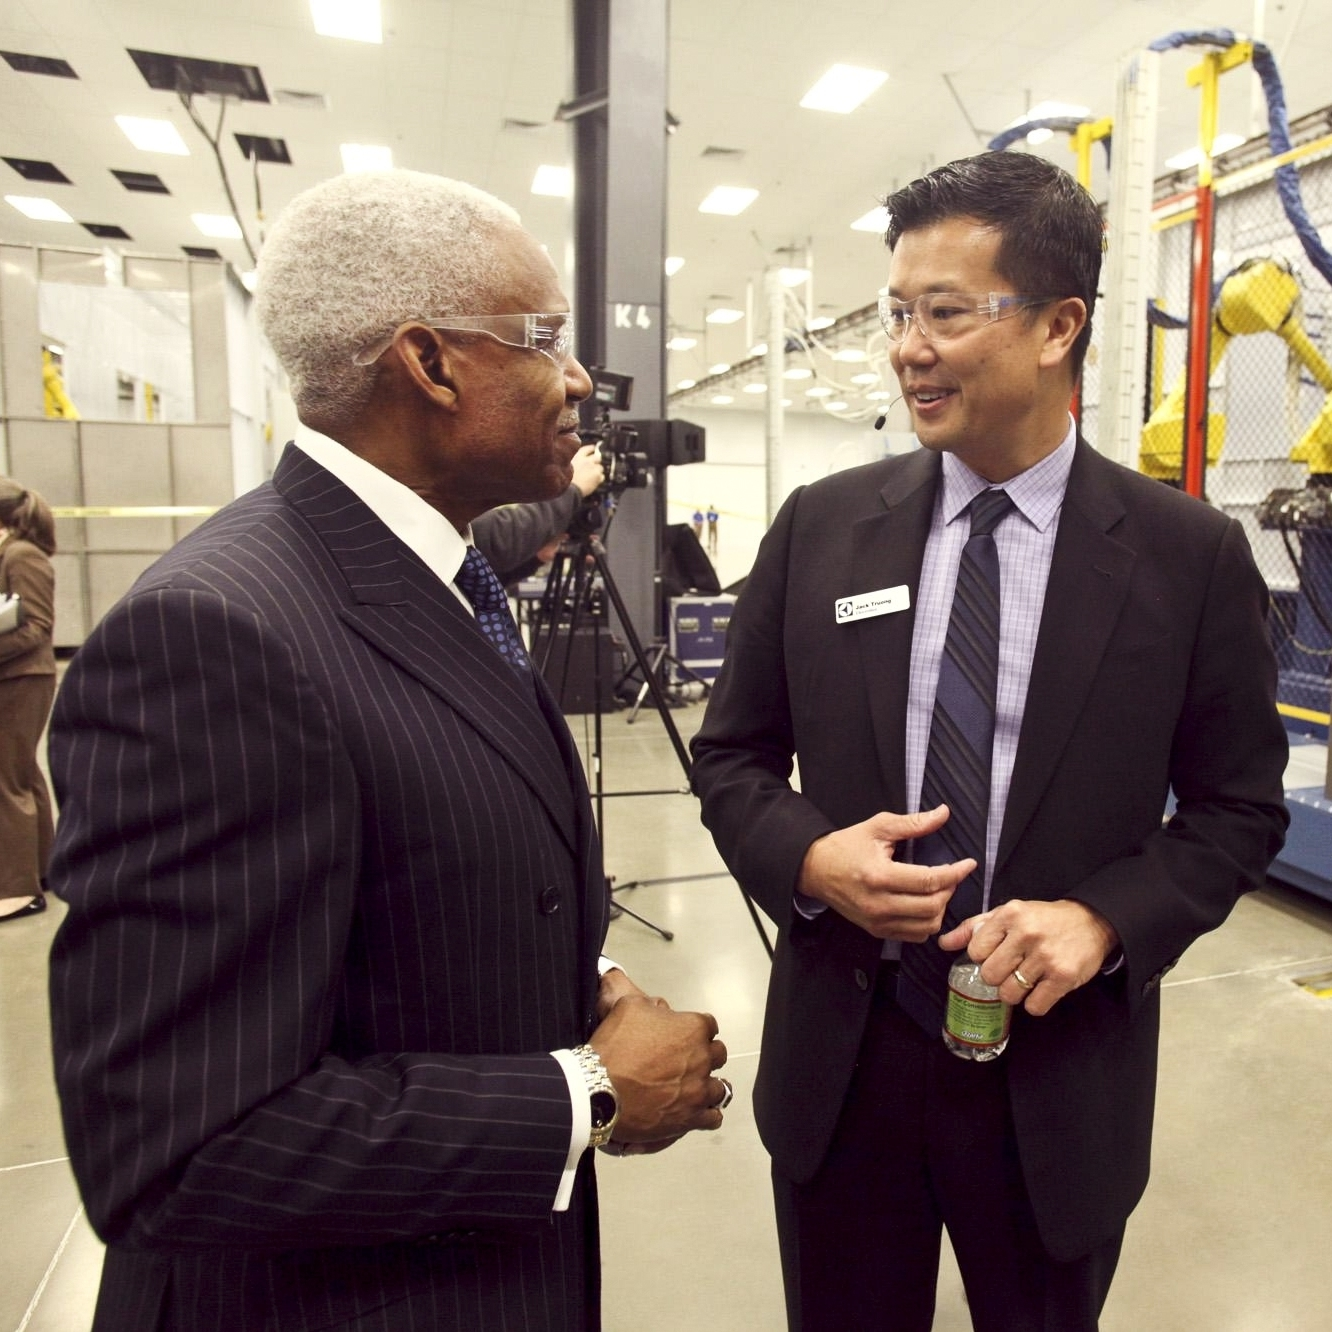 Memphis Mayor A C Wharton (left) with Jack Truong of Electrolux at the company's new plant. The city used a large incentive package to entice the company.